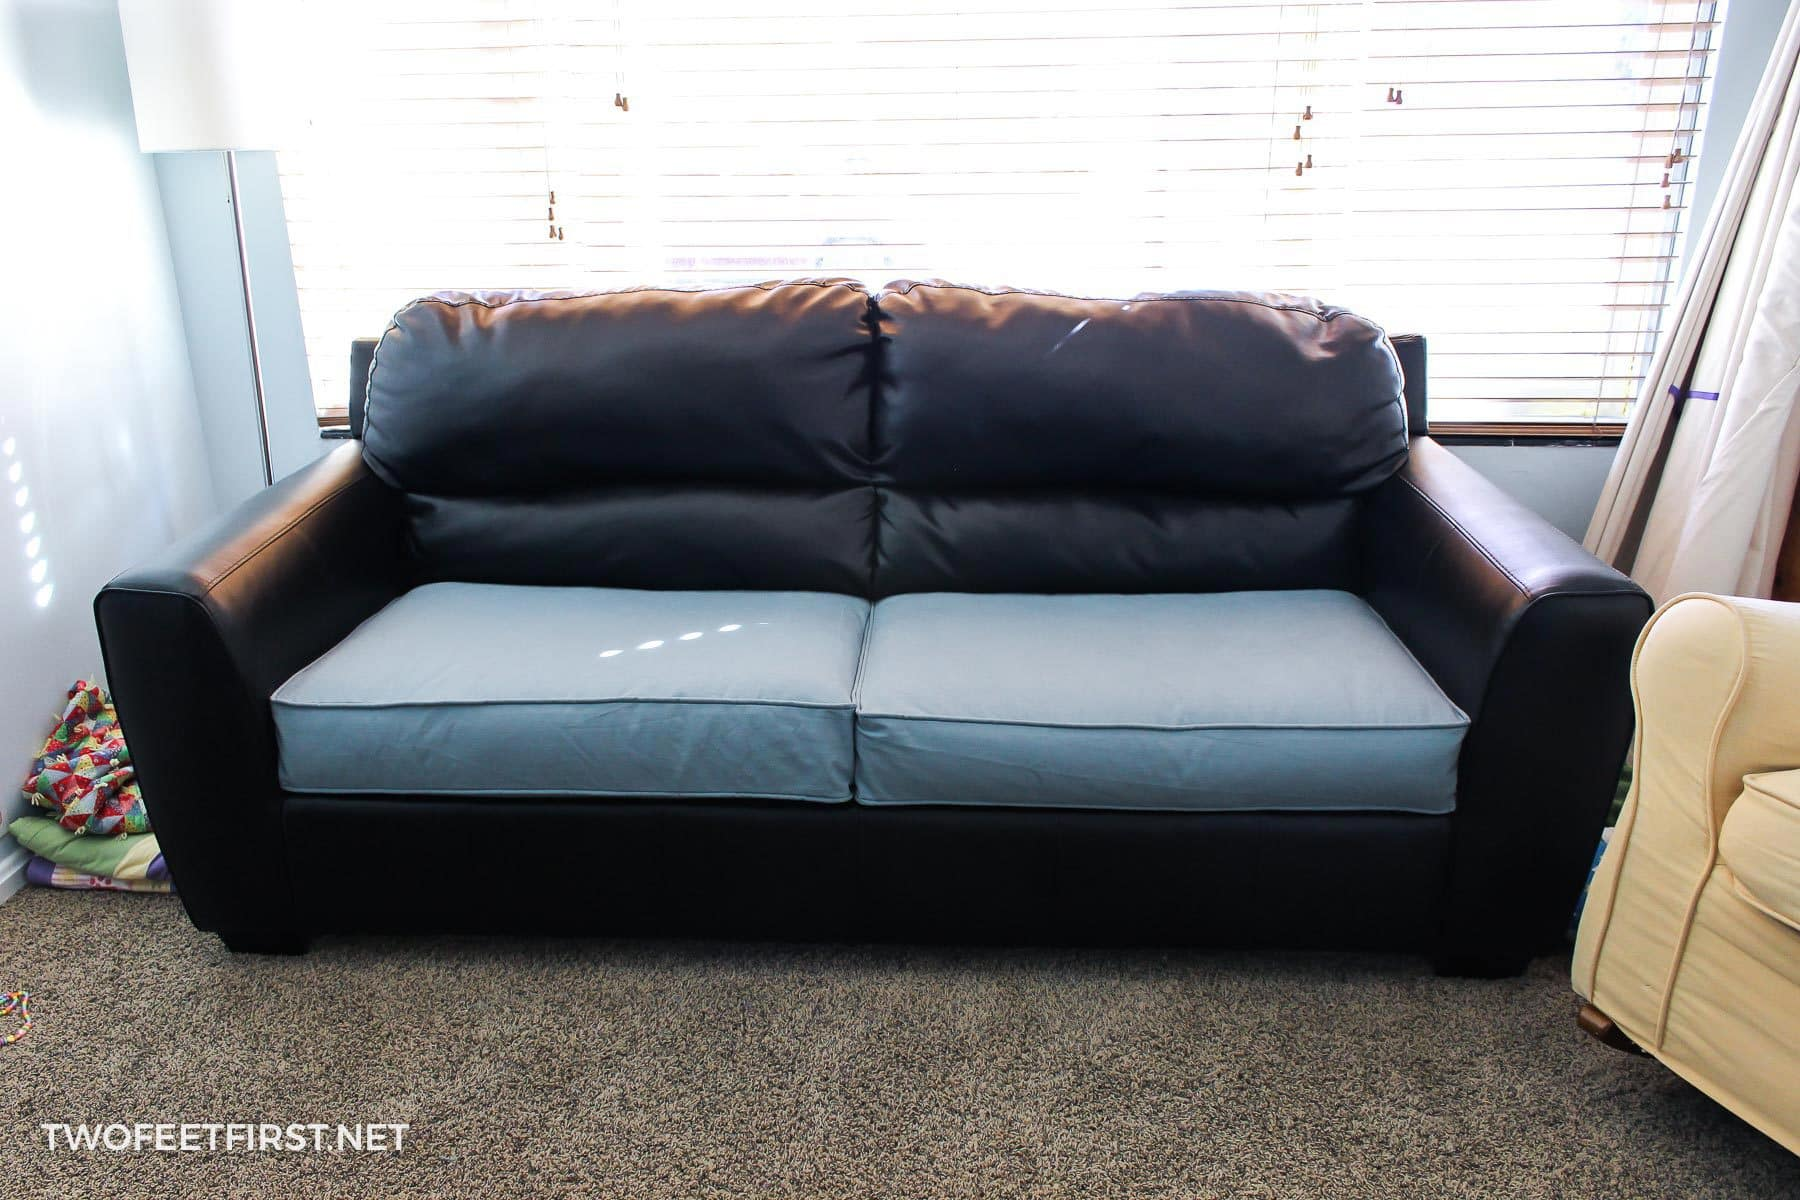 New Couch Cushions